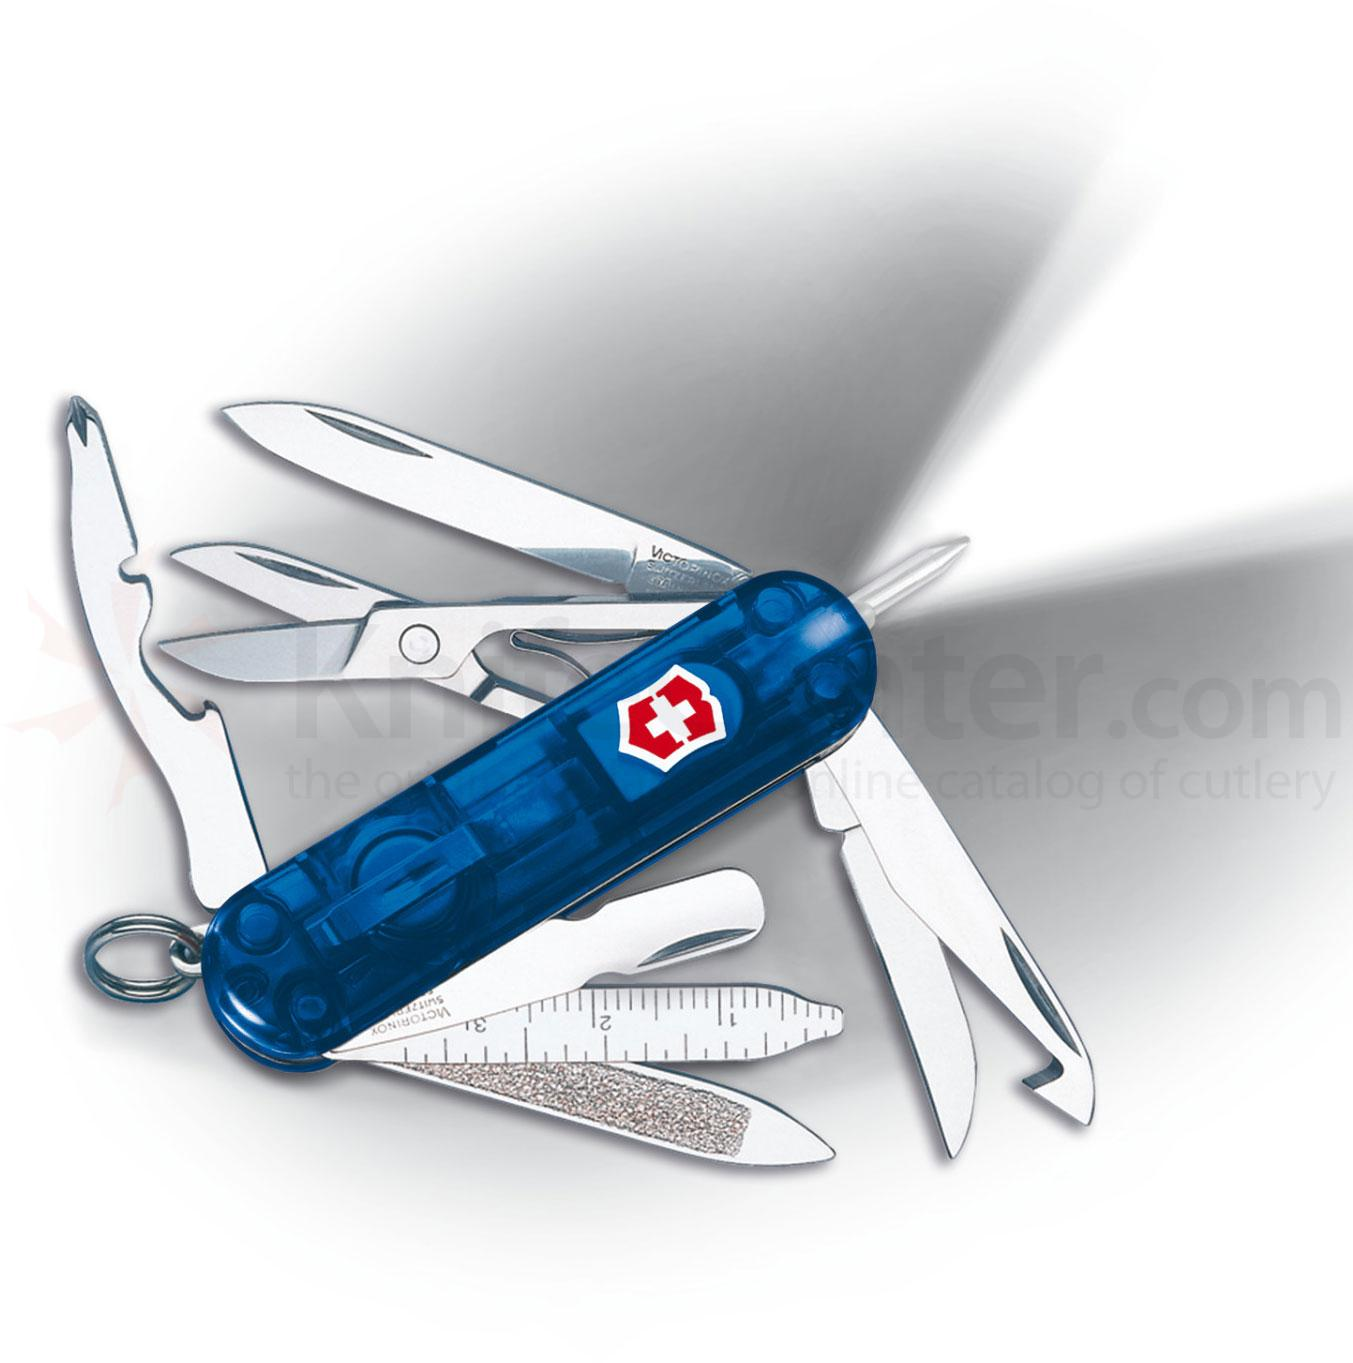 Victorinox Swiss Army Midnite Minichamp with LED, 2-1/4 inch Translucent Sapphire Handles